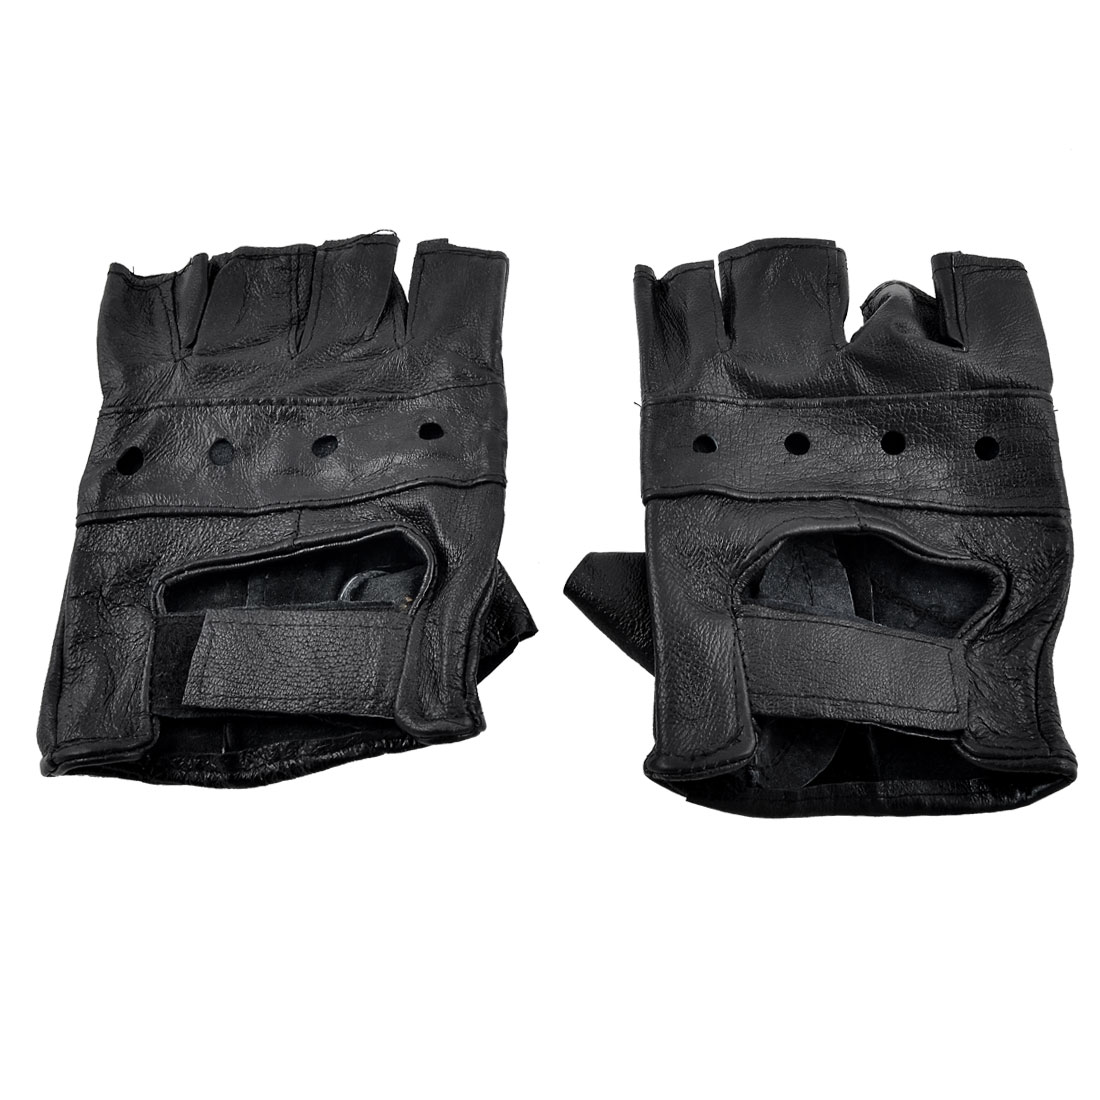 Pair Detachable Closure Black Faux Leather Driving Gloves for Man